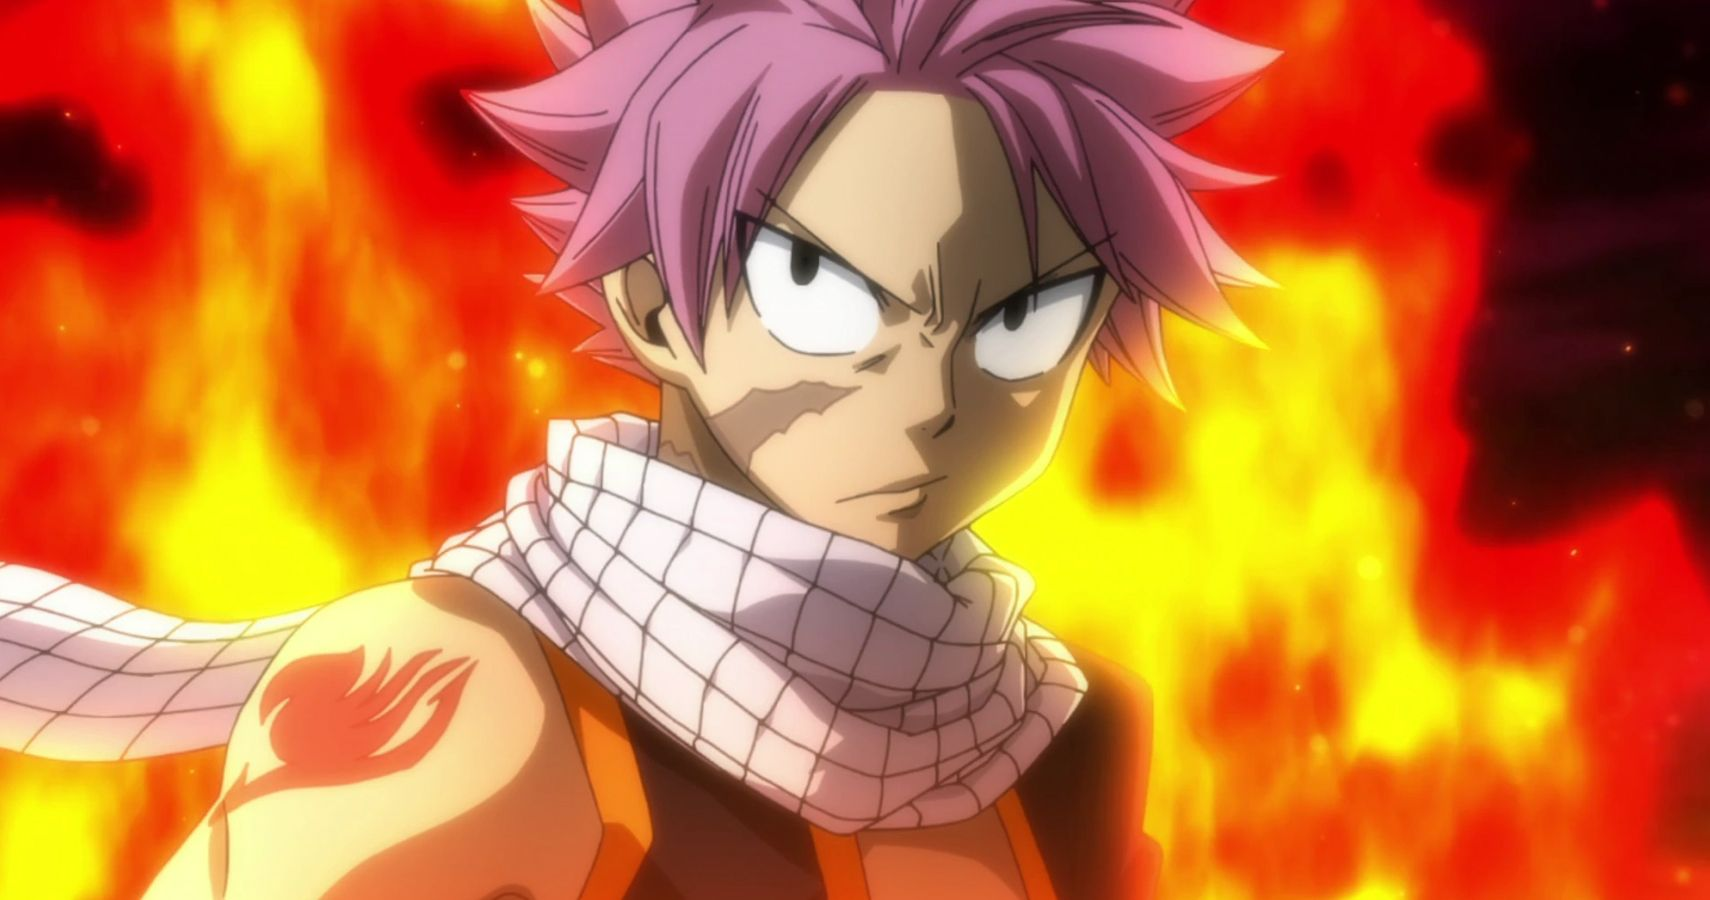 Fairy Tail: 10 Hilarious Natsu Memes Only True Fans Will Understand